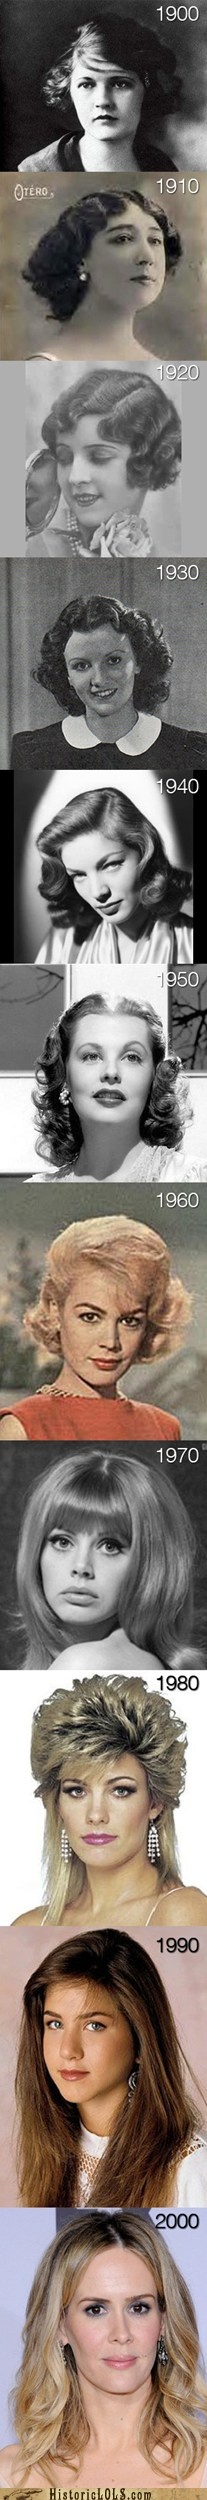 A Brief History of Hair Styles. It's interesting to see how it's changed!